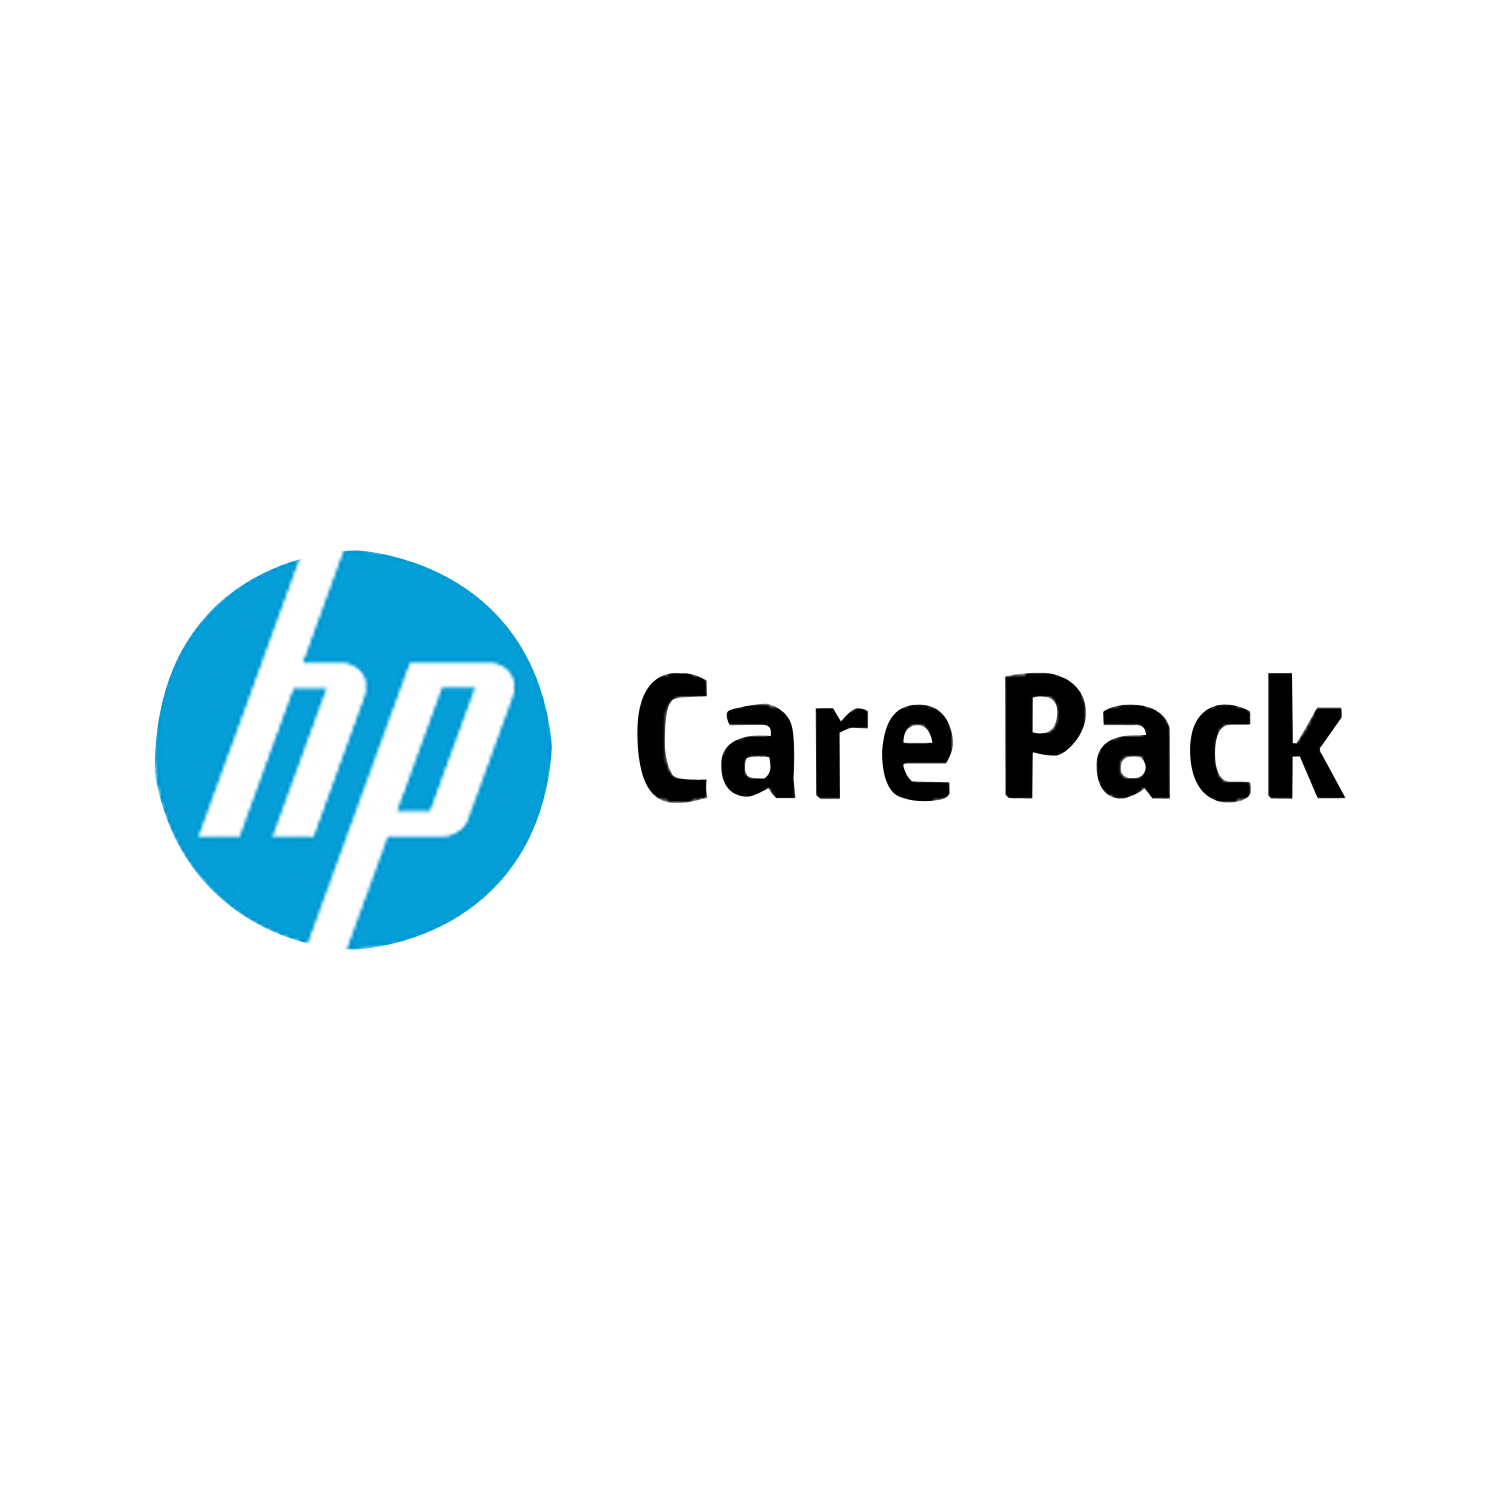 HP 2y PickupReturn Notebook Only SVC,Commercial SMB Notebook,2y PickupReturn SVC, HP Picks Up Repairs & Returns. Excl Ext Mon, Standard TAT Std Bus Hrs/days, Excl HP Holidays U9AZ8E - C2000